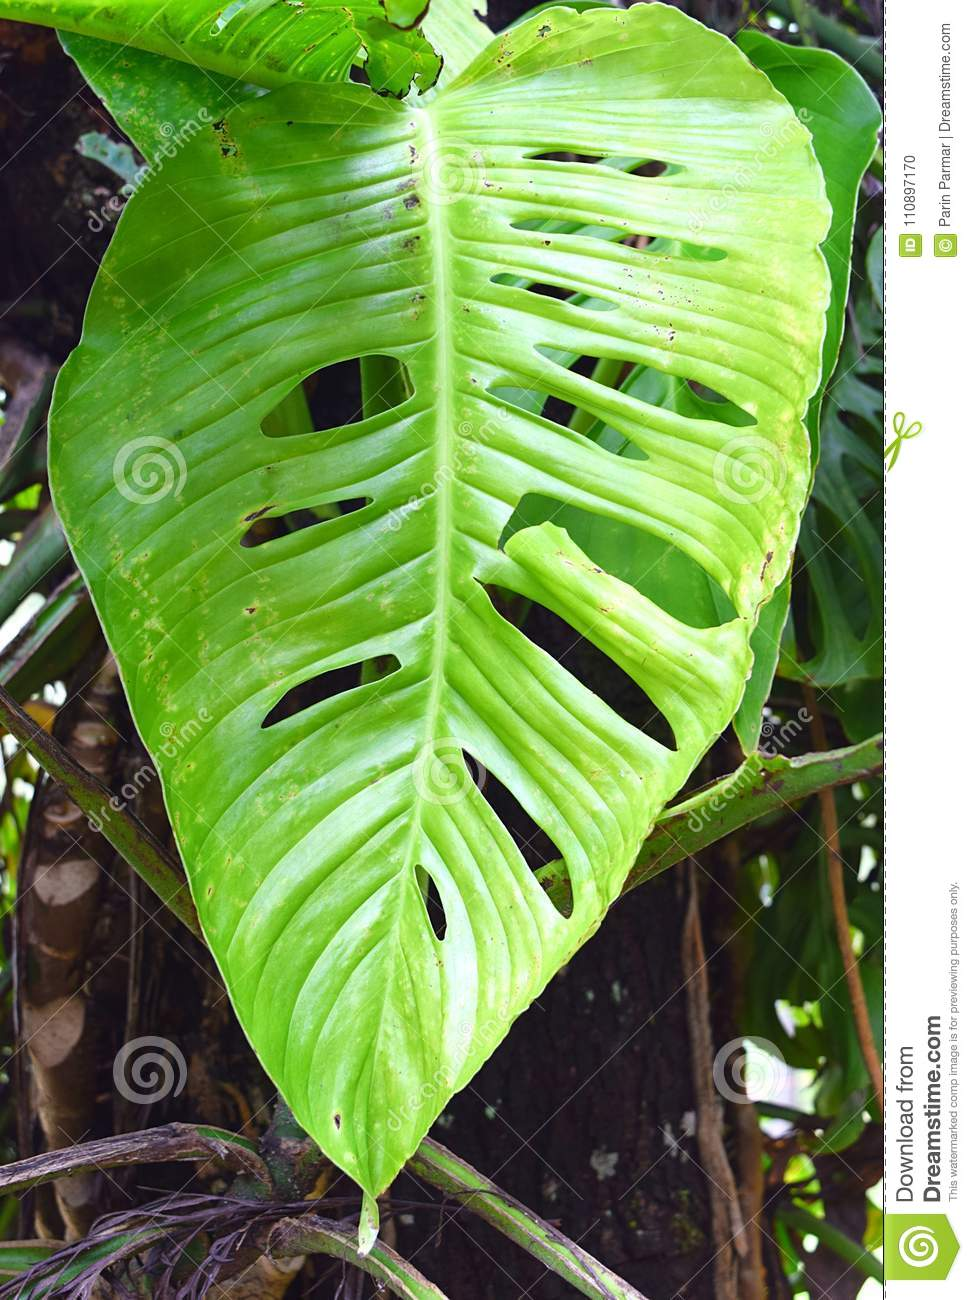 Swiss Cheese Plant - Monstera Deliciosa - Large Perforated Green